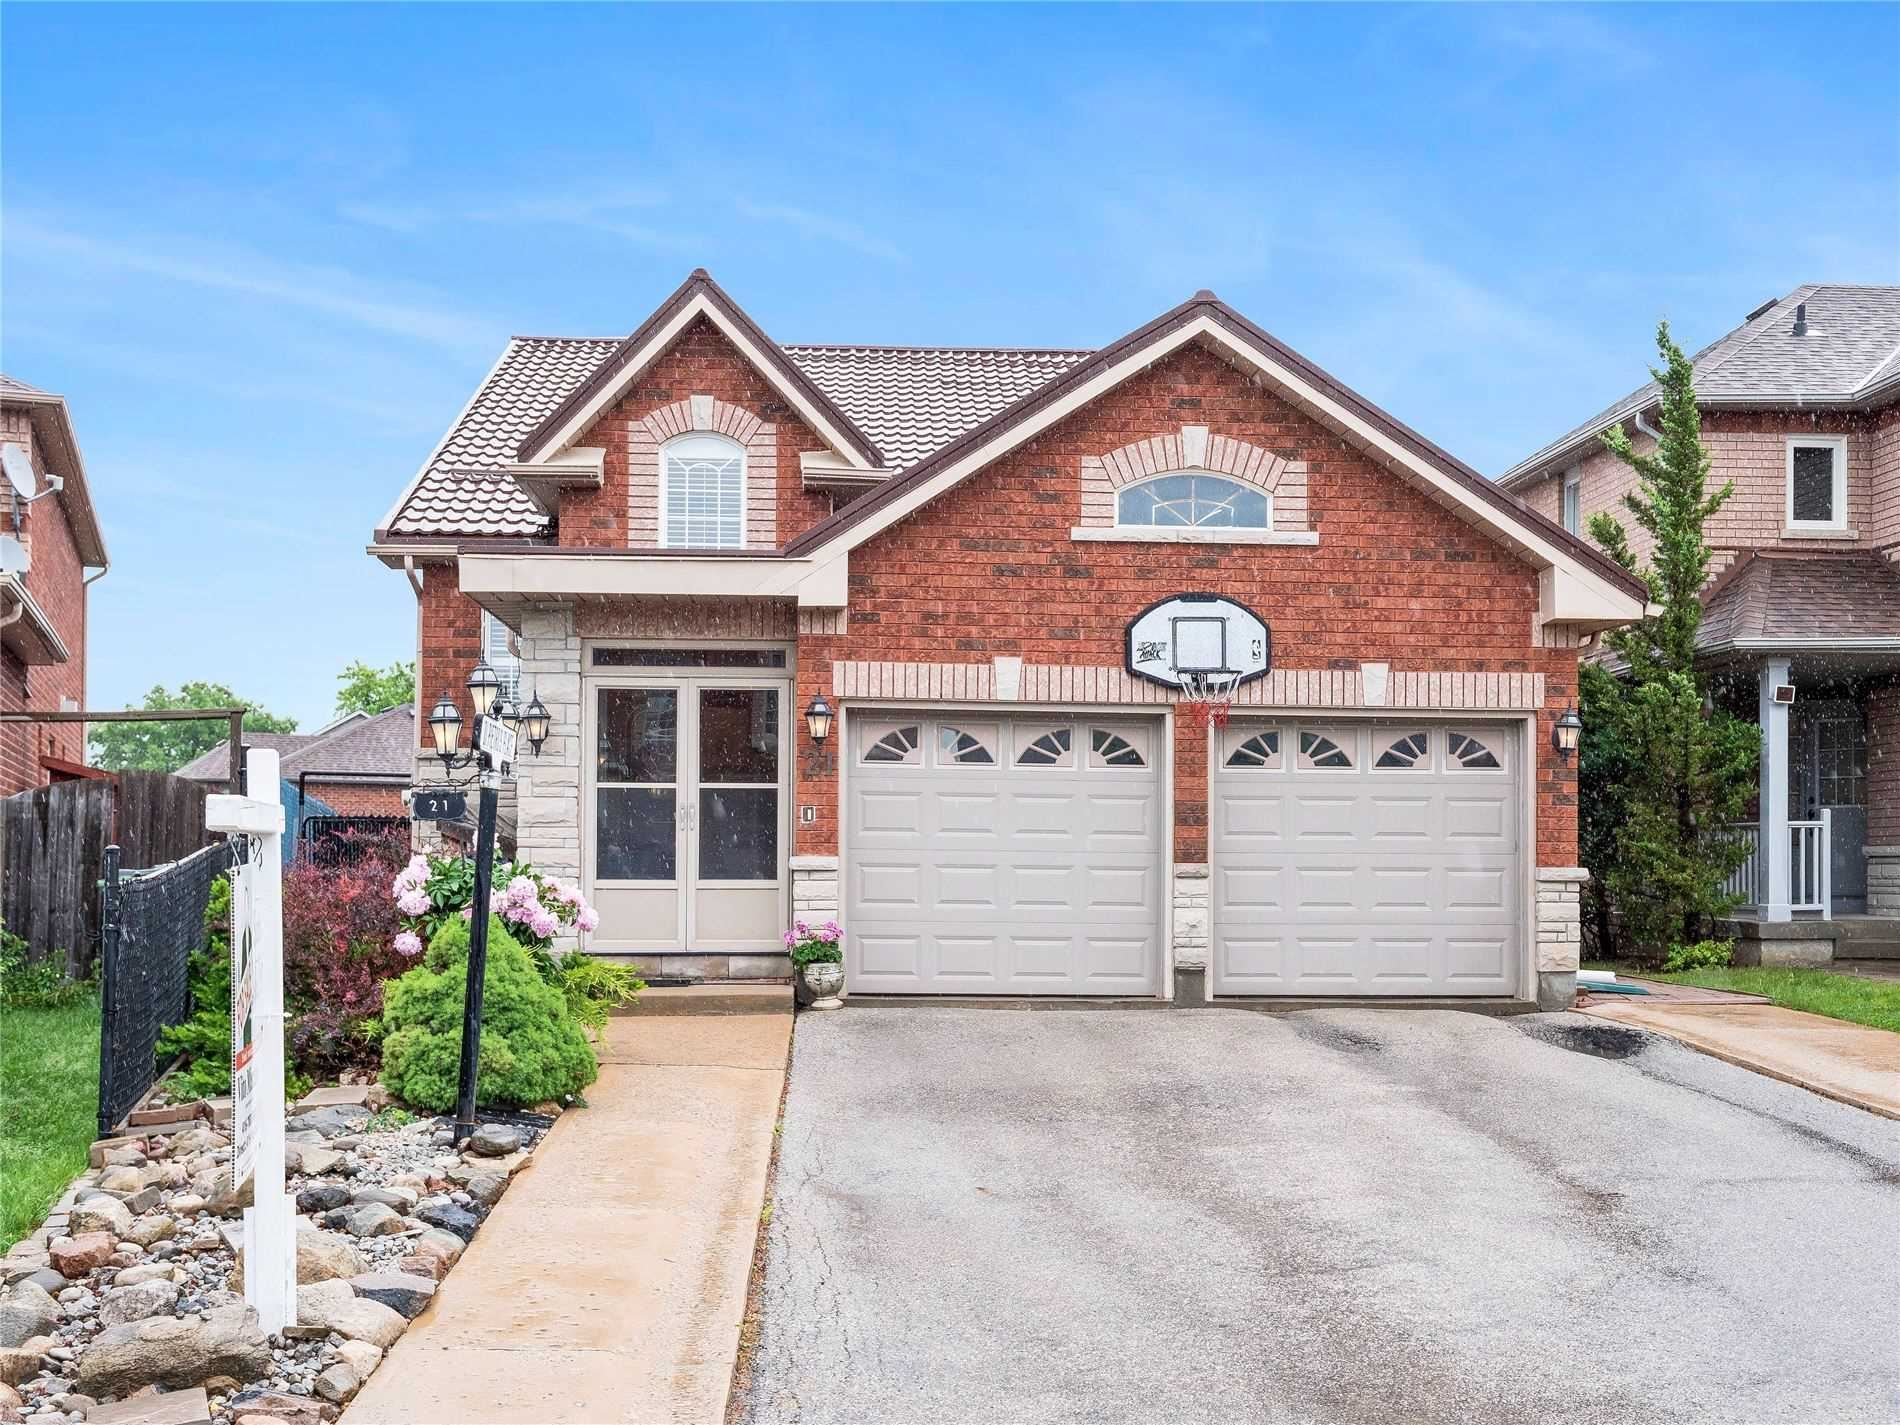 21 Boltonview Cres, Caledon, ON L7E2H2 - MLS#: W5270940